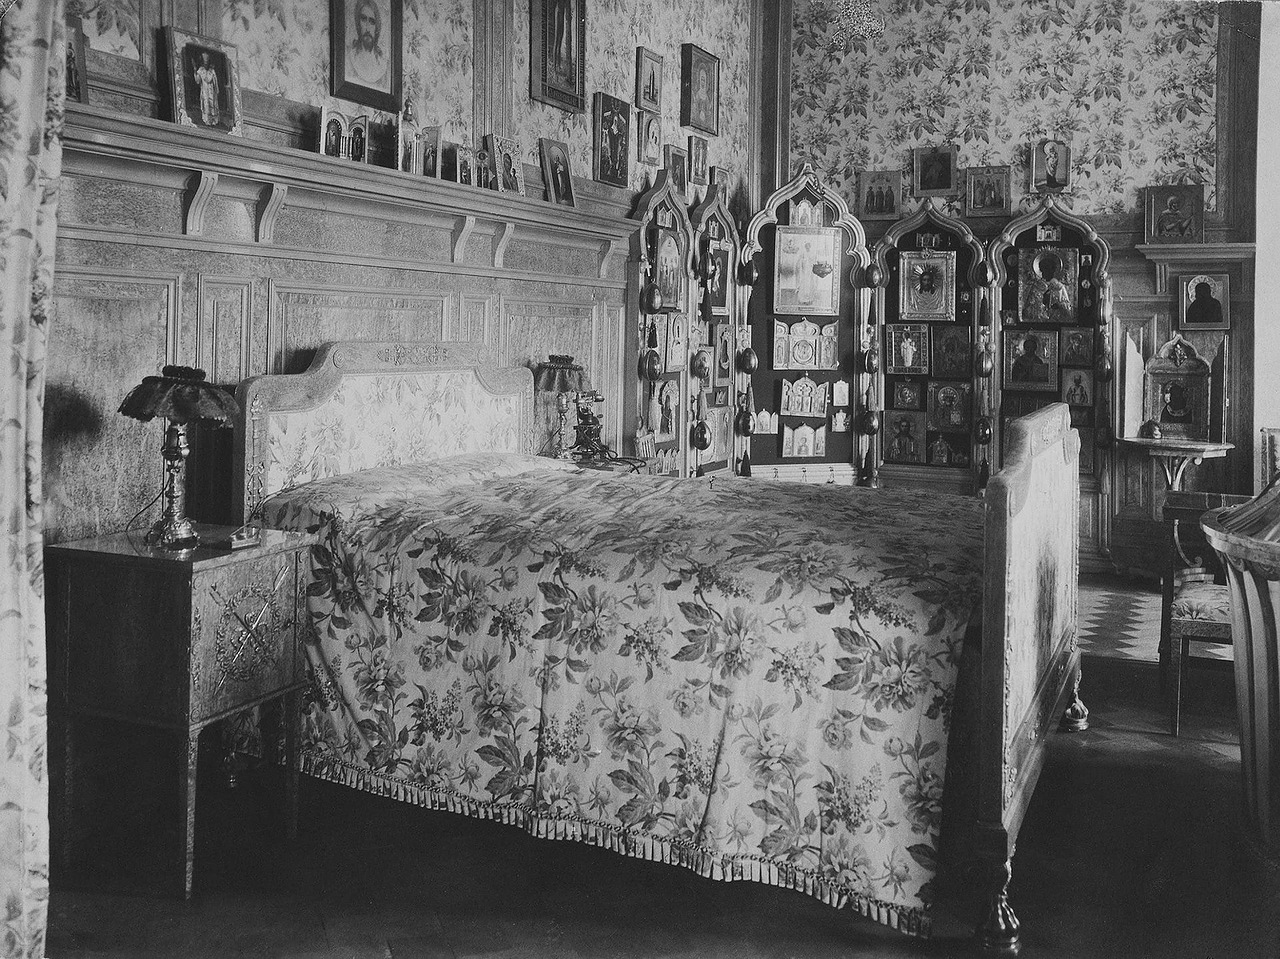 In 1904, Nicholas II transferred the permanent residence to Alexandrovsky Palace in Tsarskoye Selo, the royal family's estate located near the city of Pushkin, 25 kilometers from St. Petersburg. / Emperor Nicholas II's bedroom.